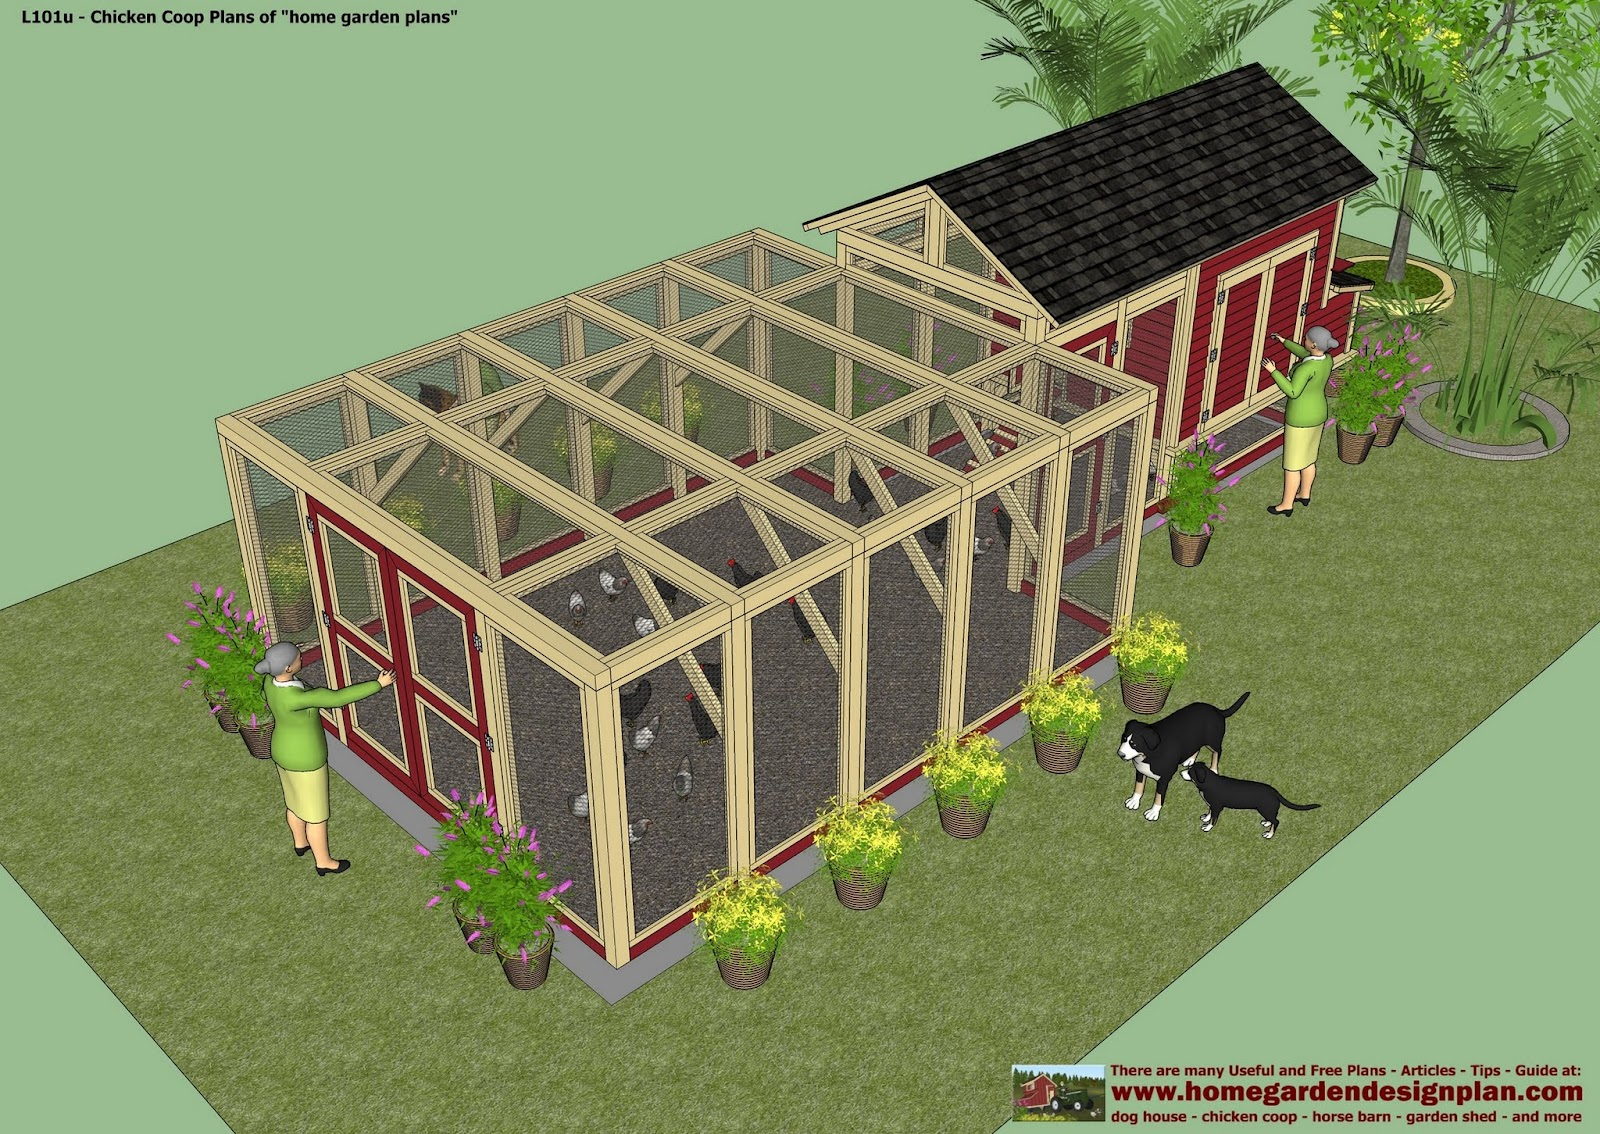 Home garden plans l101 chicken coop plans construction for Plans chicken coop